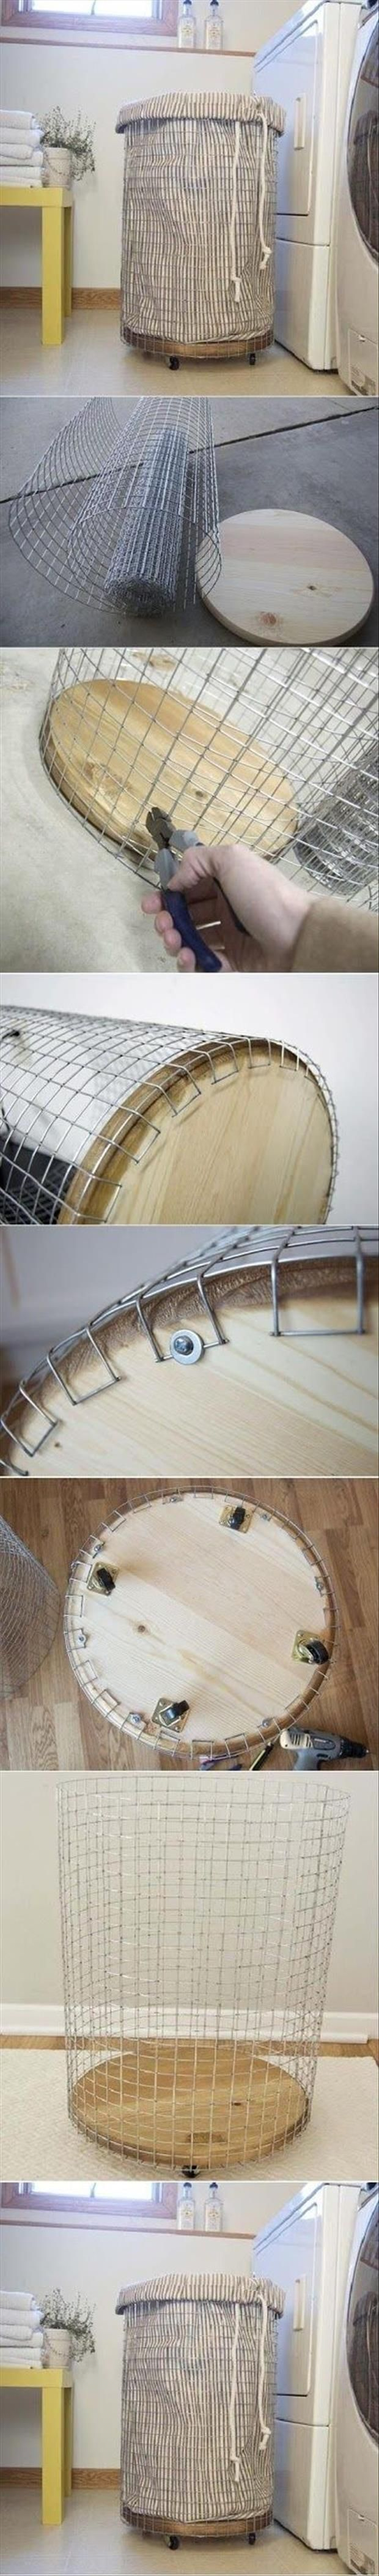 477 best Bed Springs / Chicken Wire / Wire Crafts images on ...